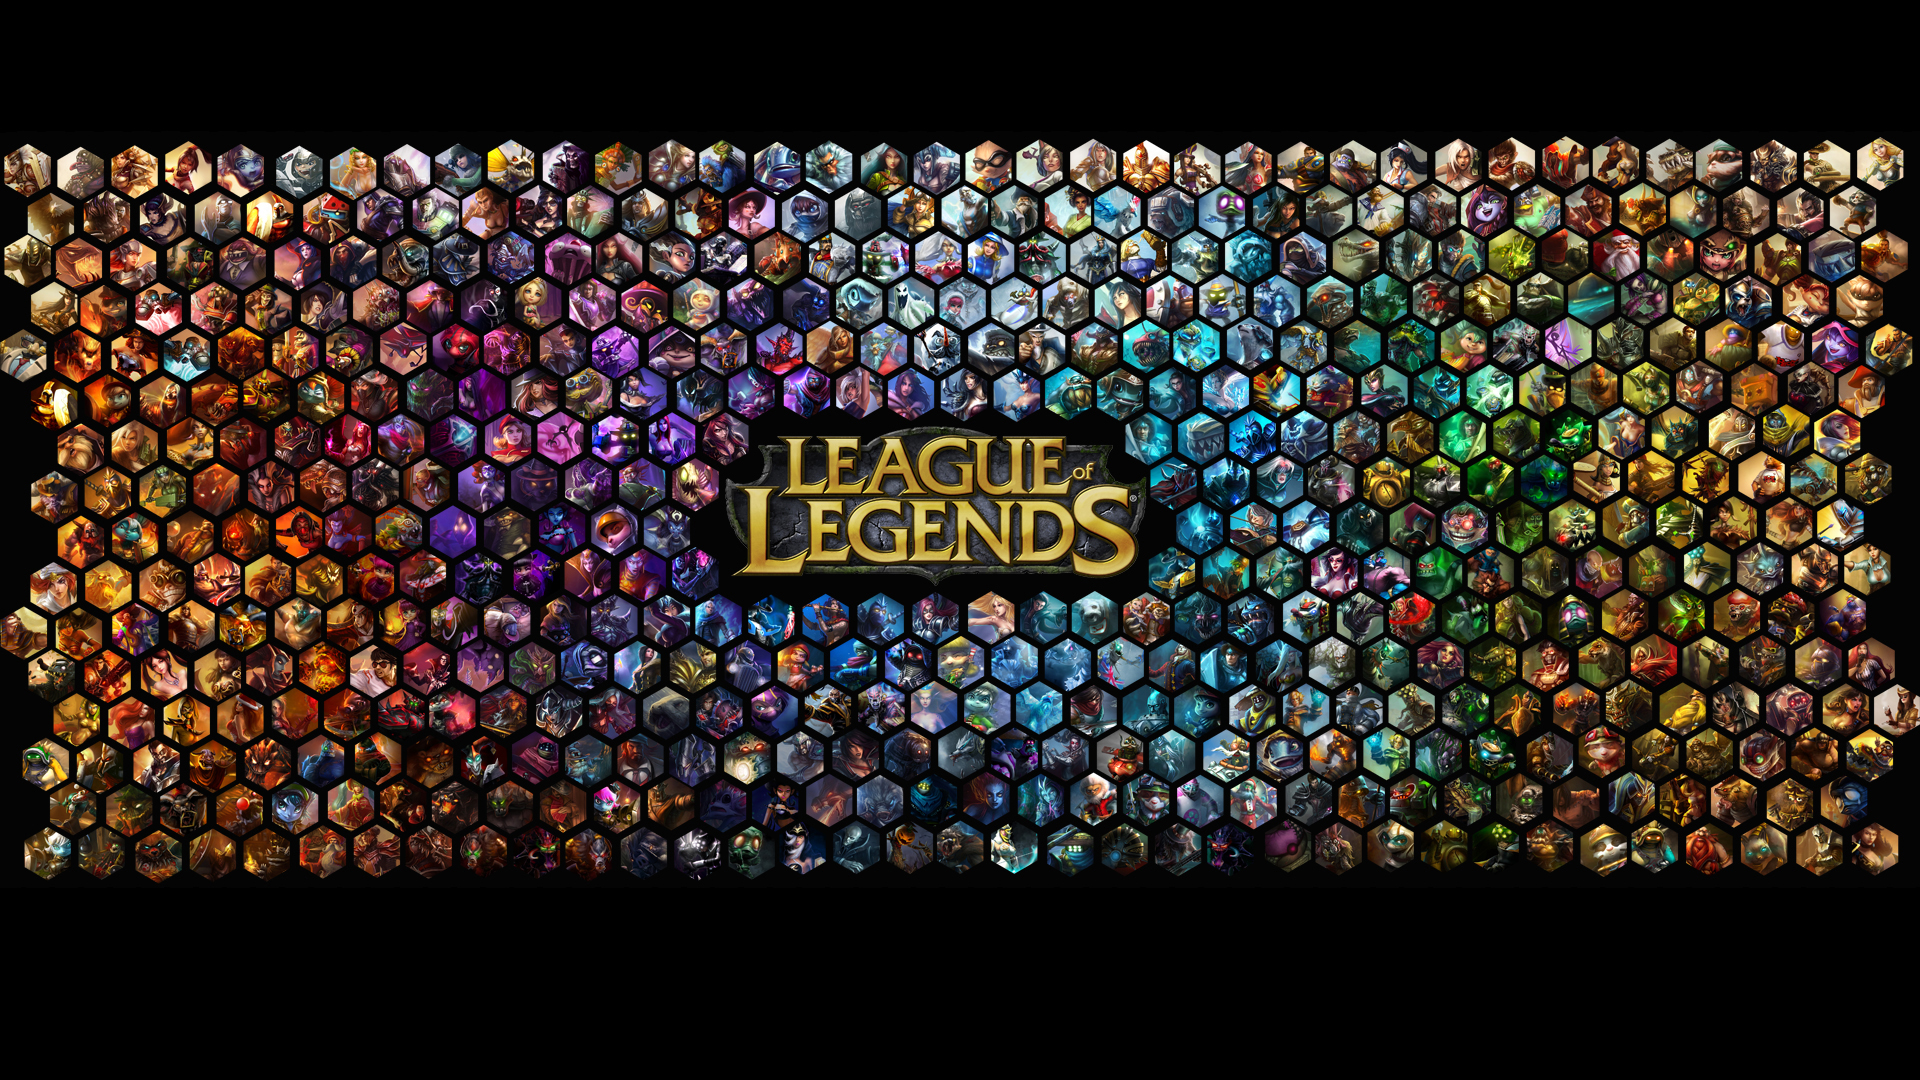 A Survey of League of Legends Champions from a Gendered Perspective